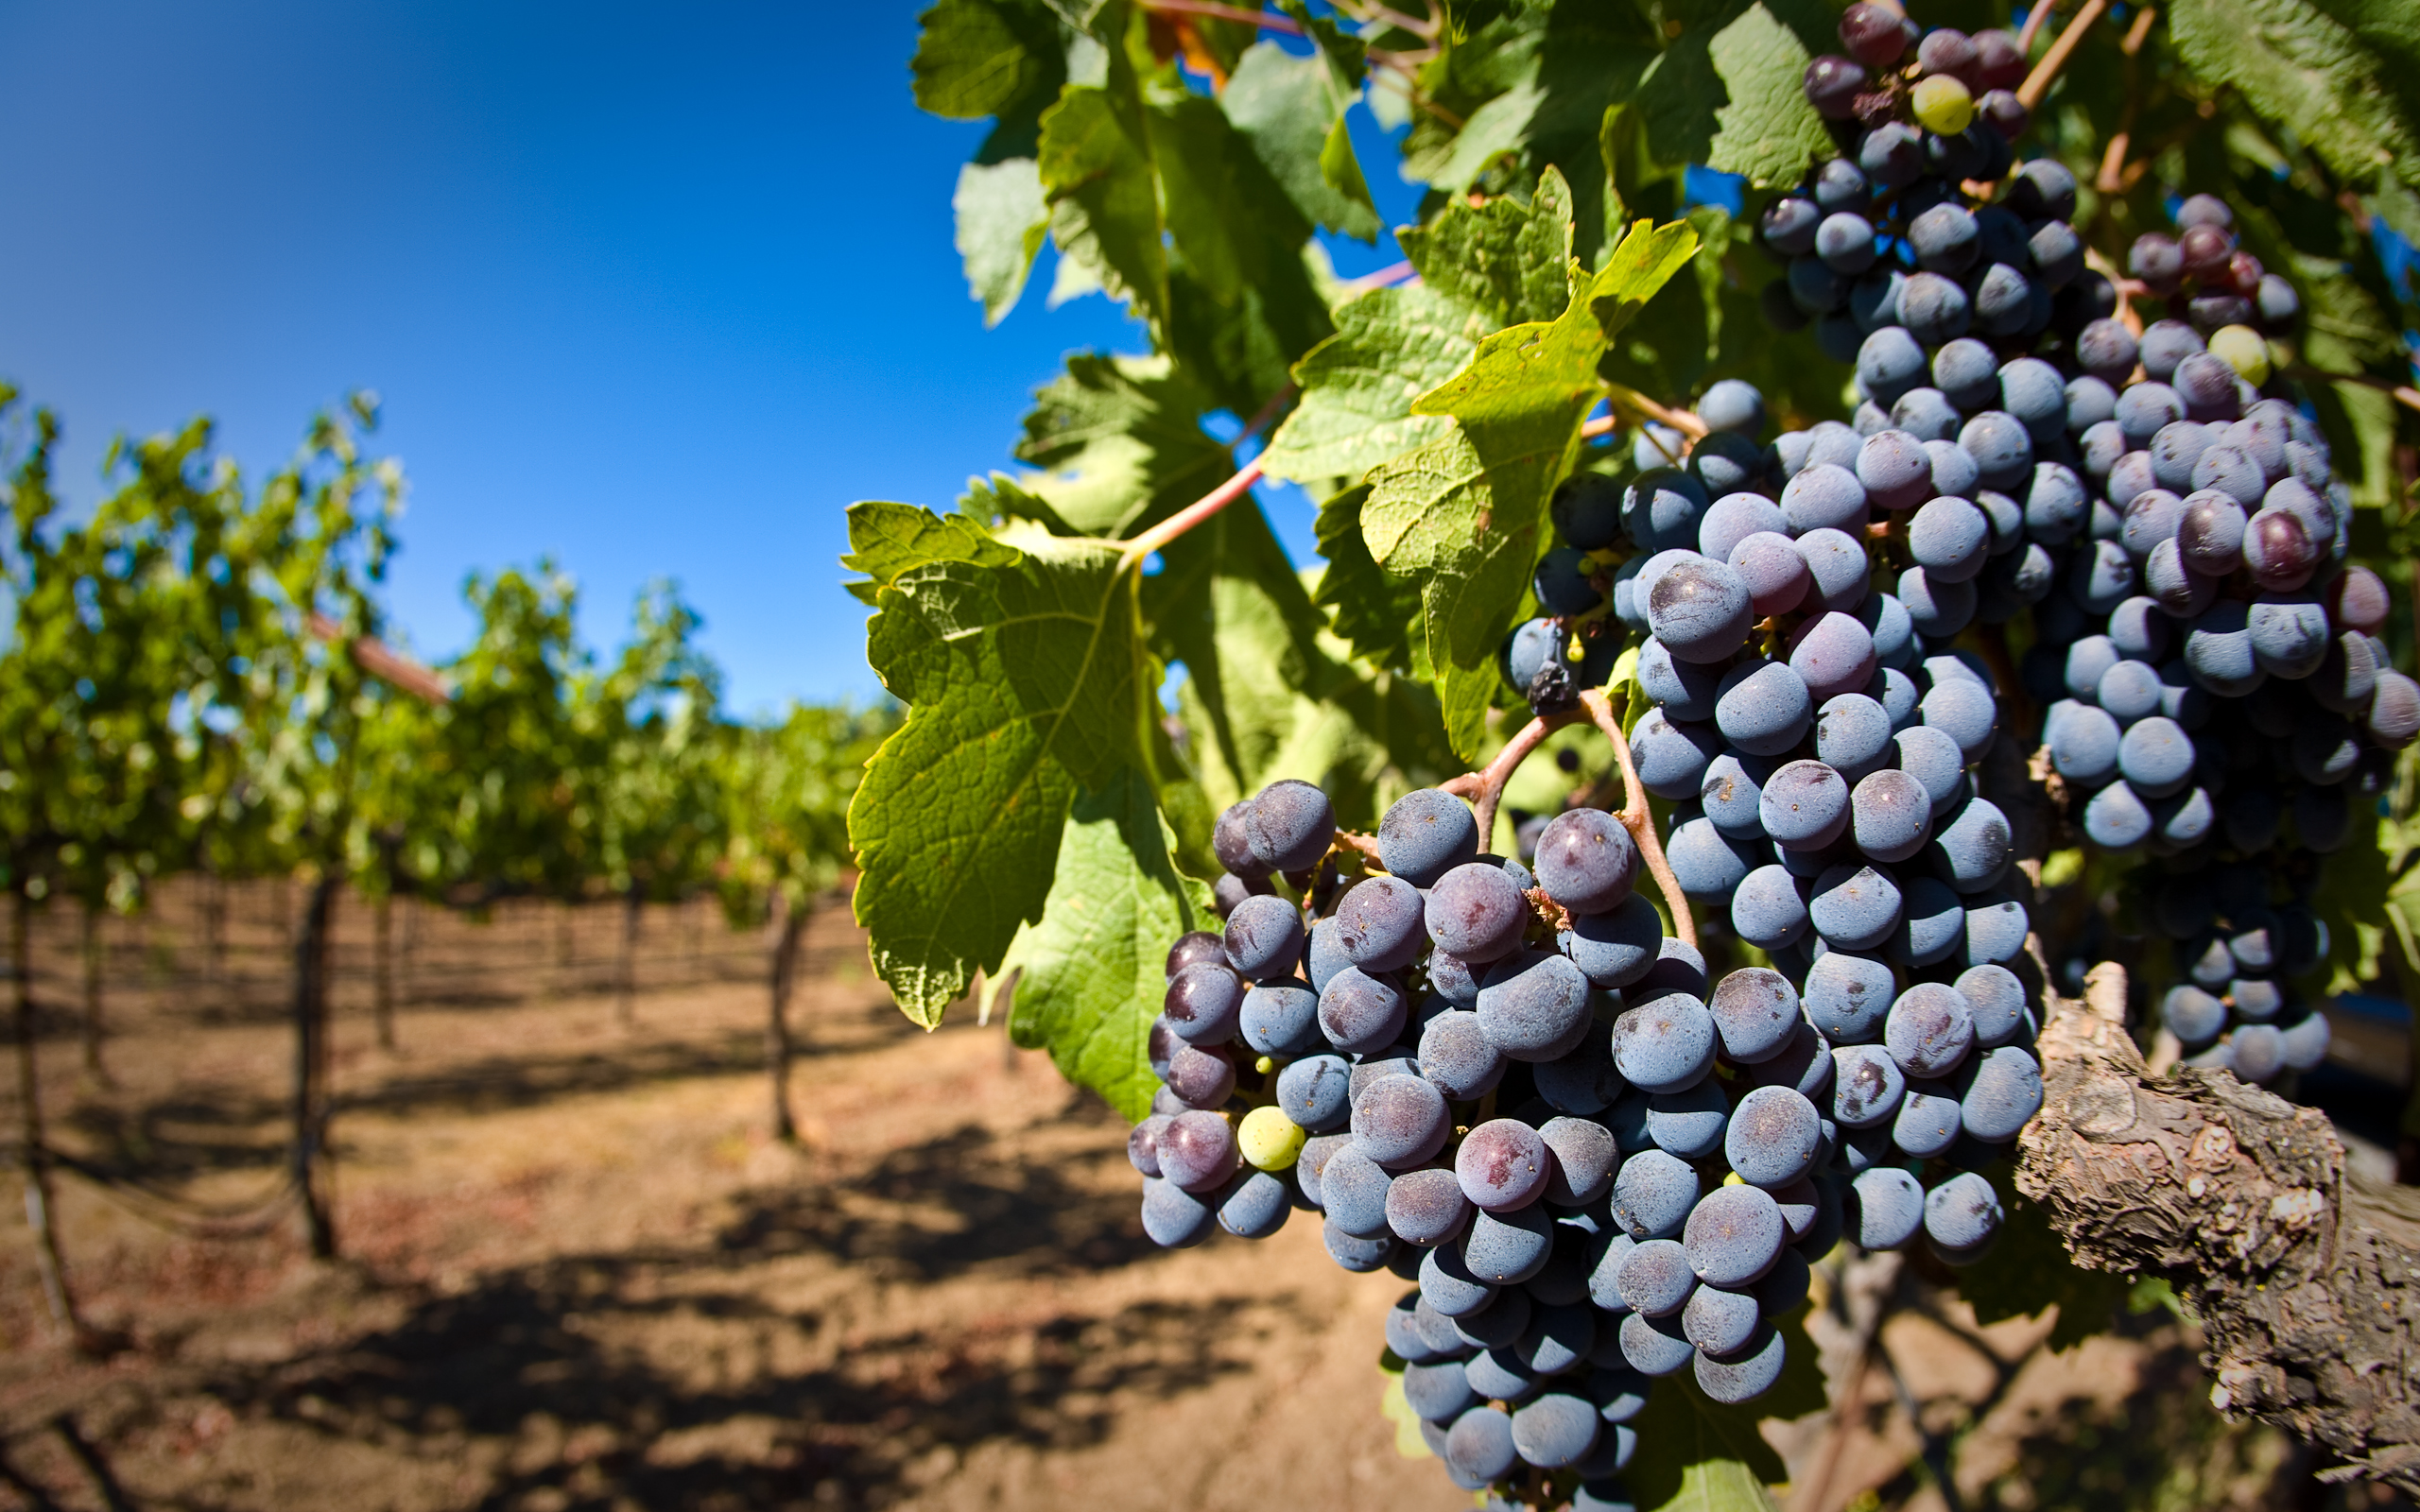 Santa Monica Mountains Vineyard Ban Approved